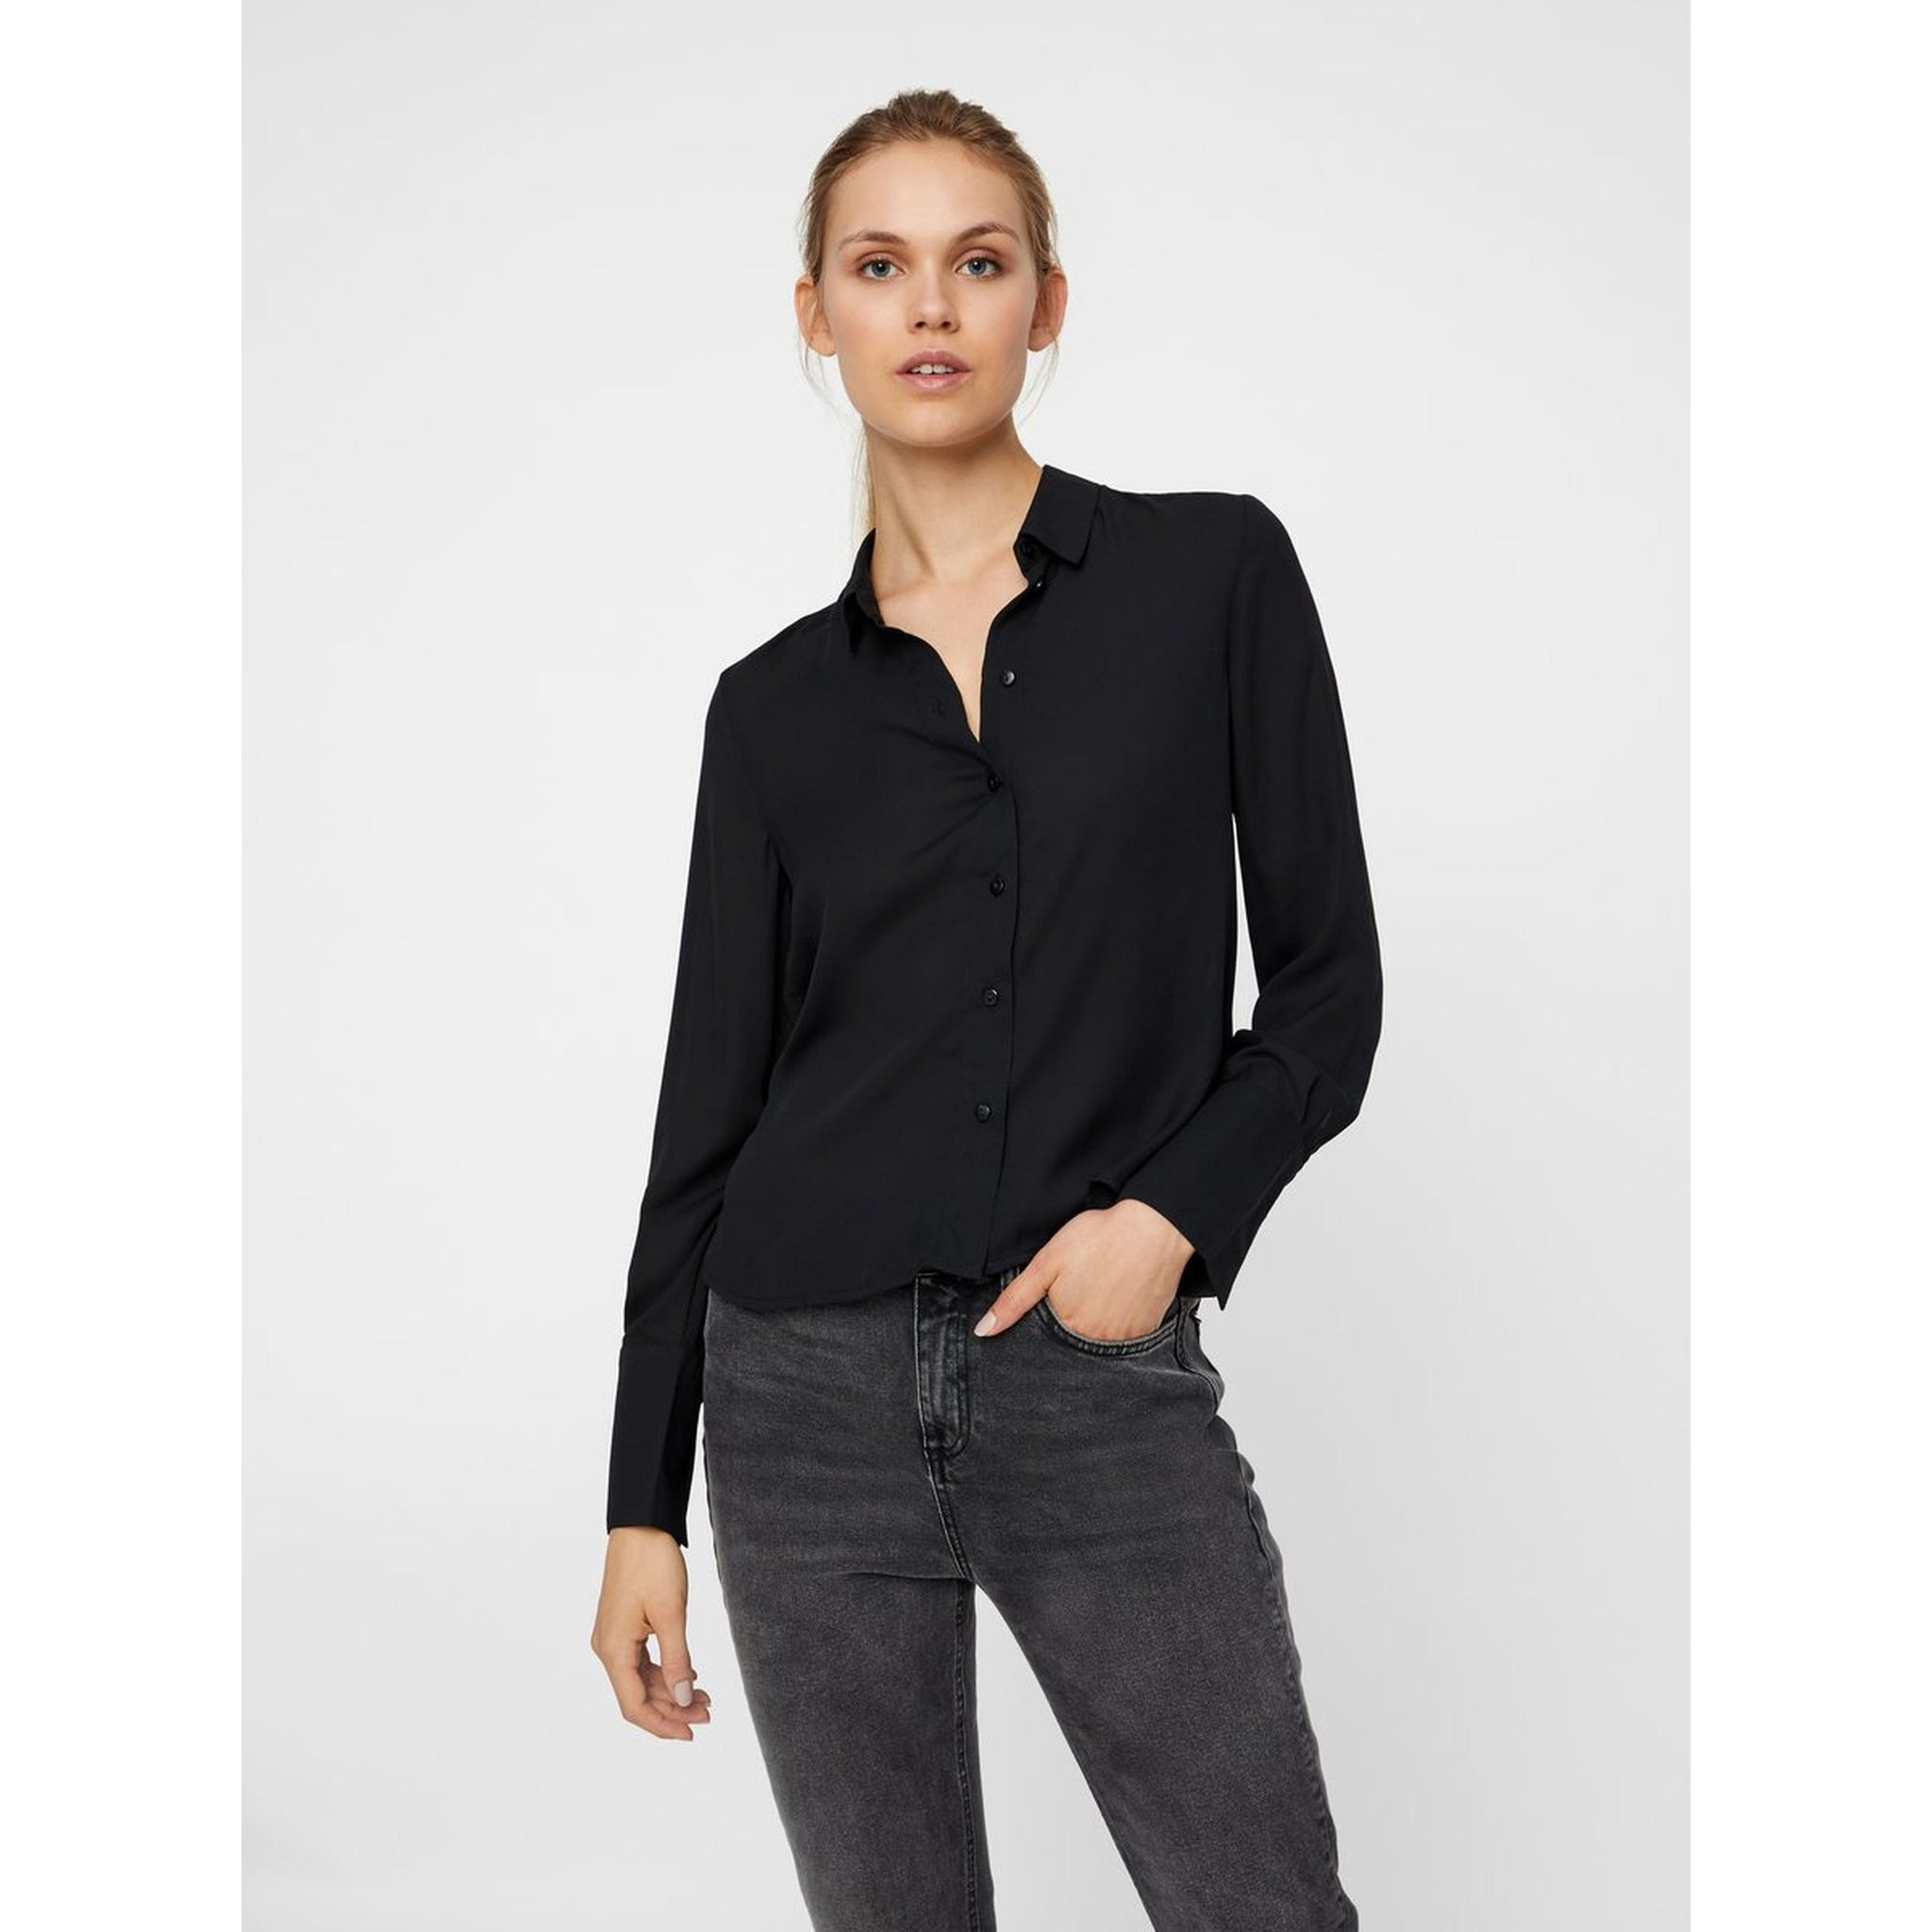 VERO MODA : Birta Long Sleeve Shirt